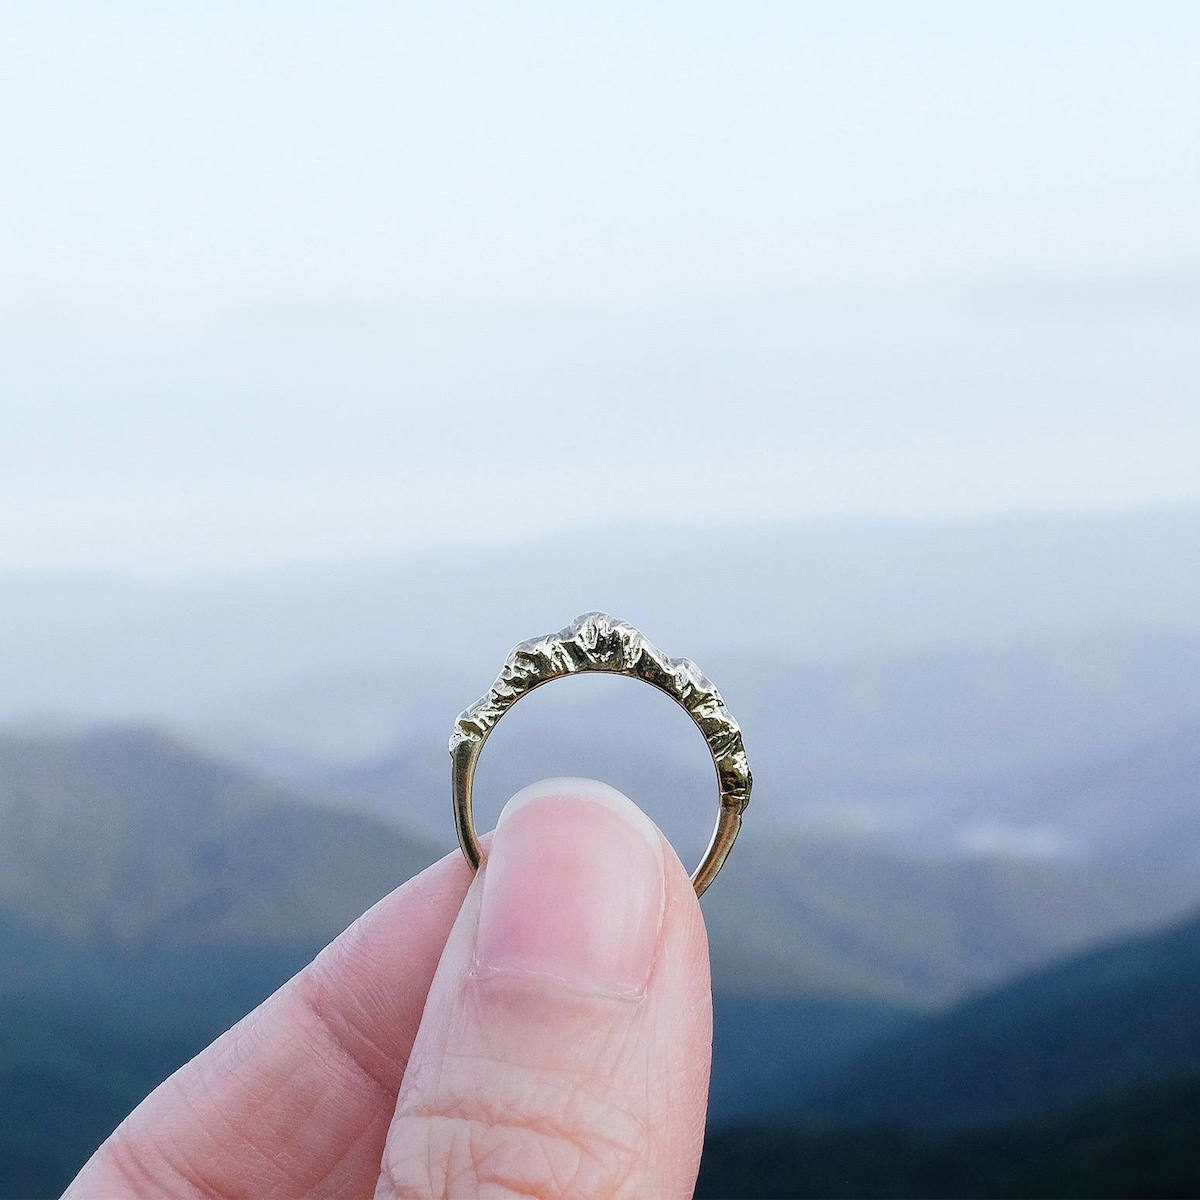 Mountain ring from Everli